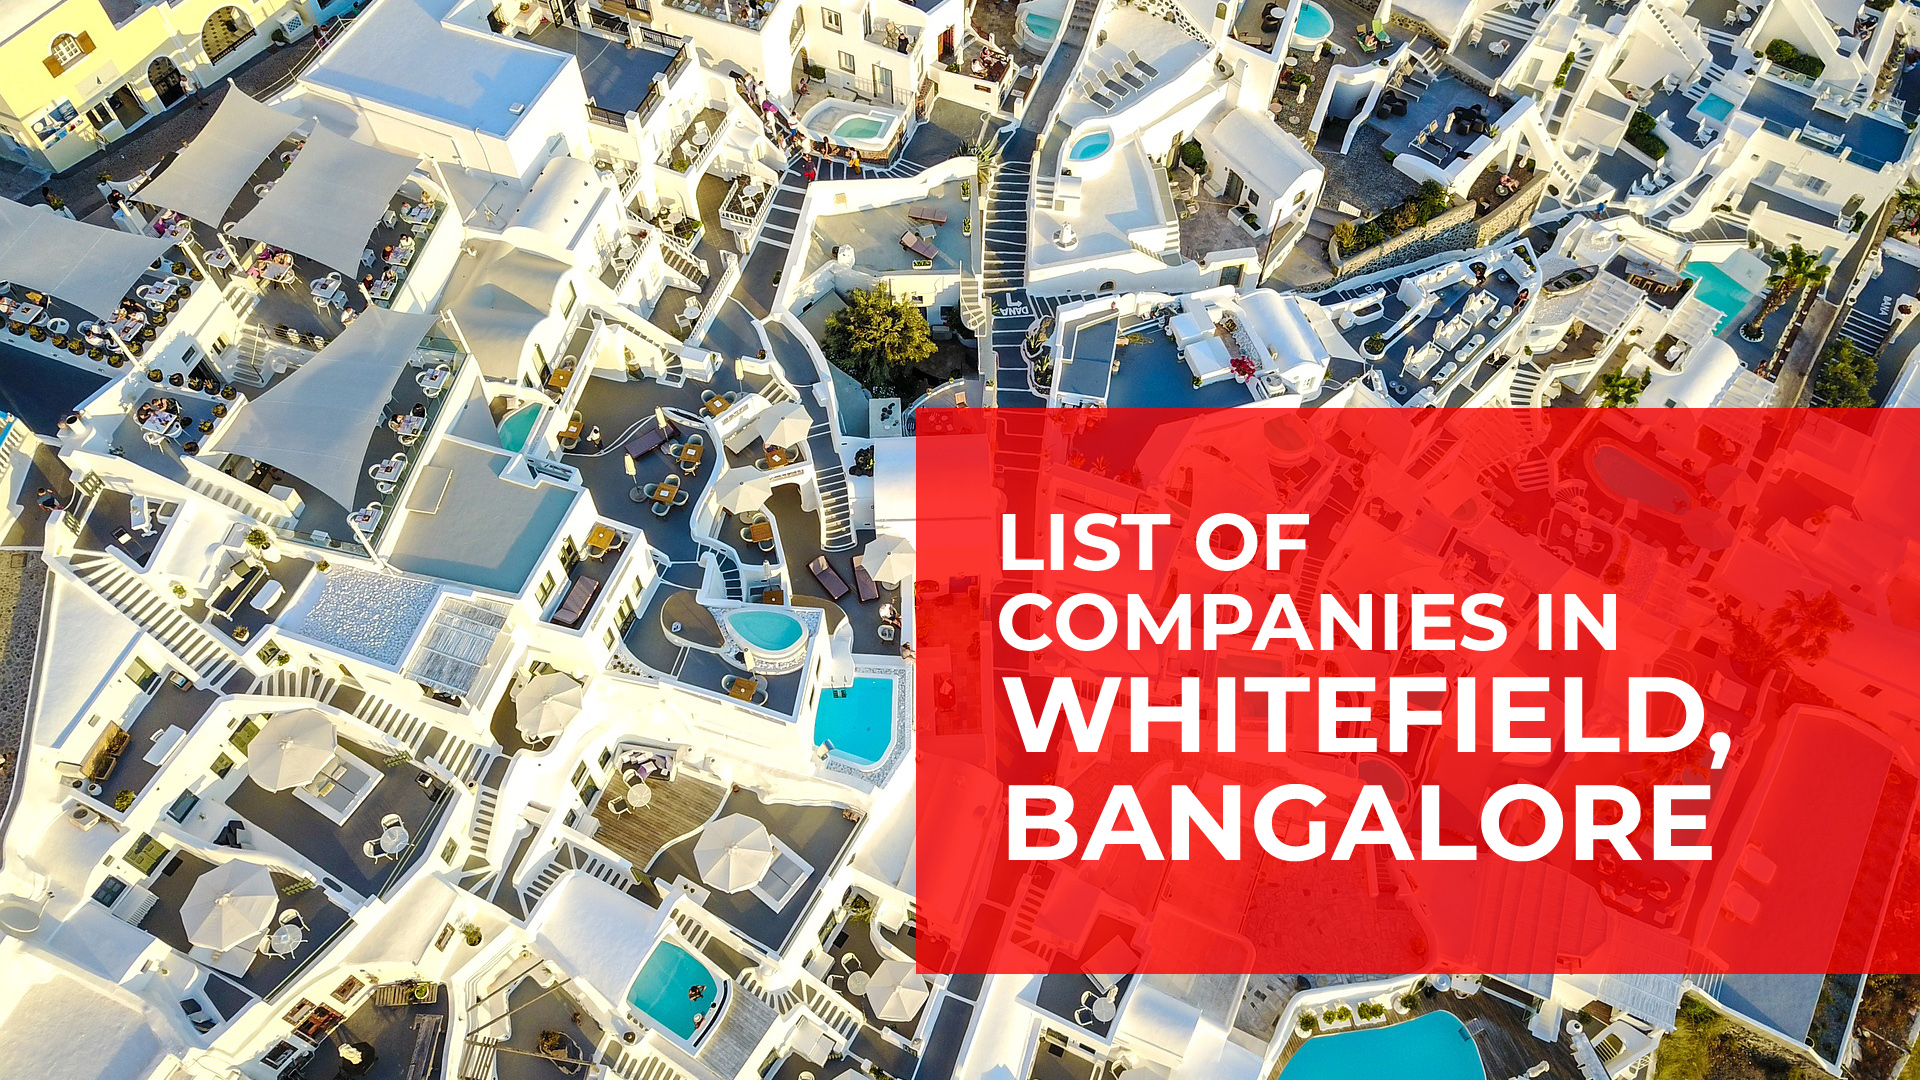 List of companies in Whitefield Bangalore